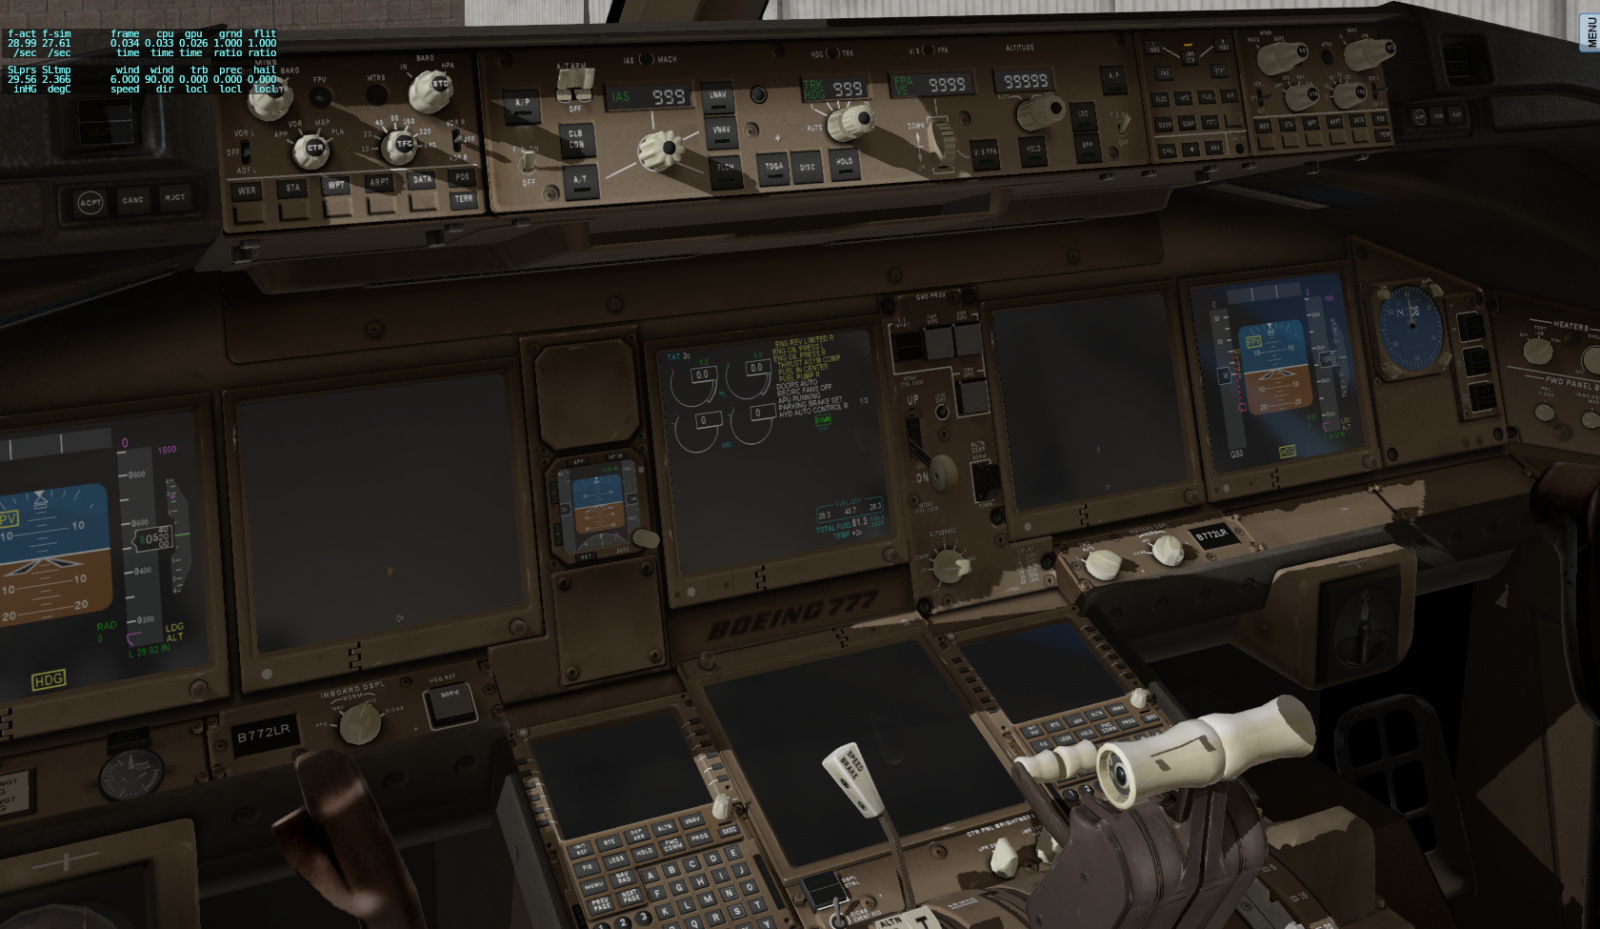 777 doesn't work in XP11, black Display: MAP,FMC Autopilot - Boeing